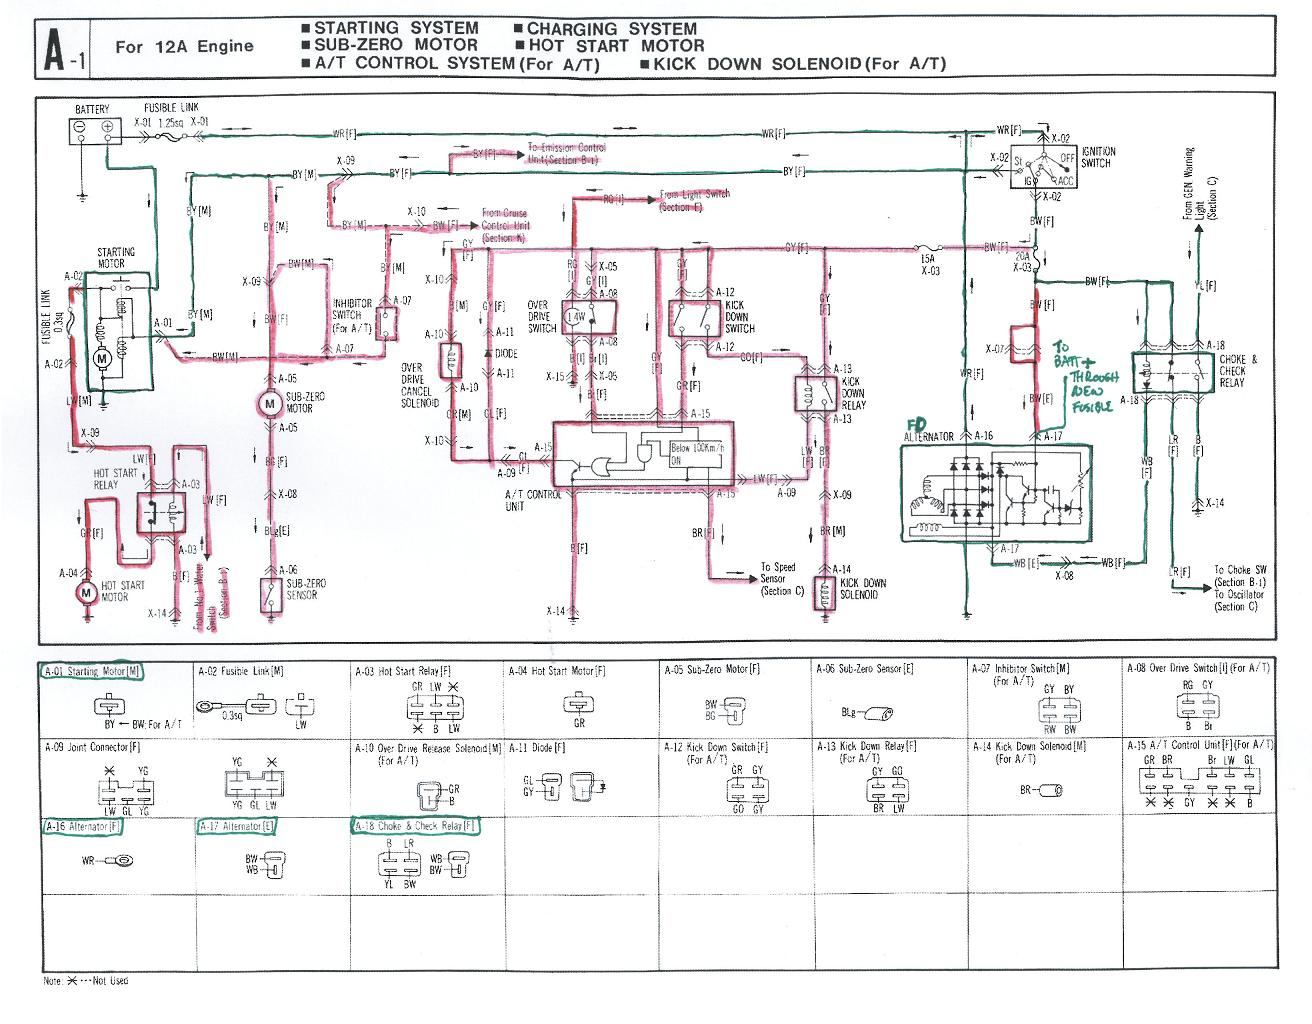 [SCHEMATICS_49CH]  Wiring Diagram 2007 Kenworth T800 2004 Ford F 250 Wiring Diagram -  hazzard.astrea-construction.fr | Kenworth T600 Wiring Diagrams |  | Begeboy Wiring Diagram Source - ASTREA CONSTRUCTION